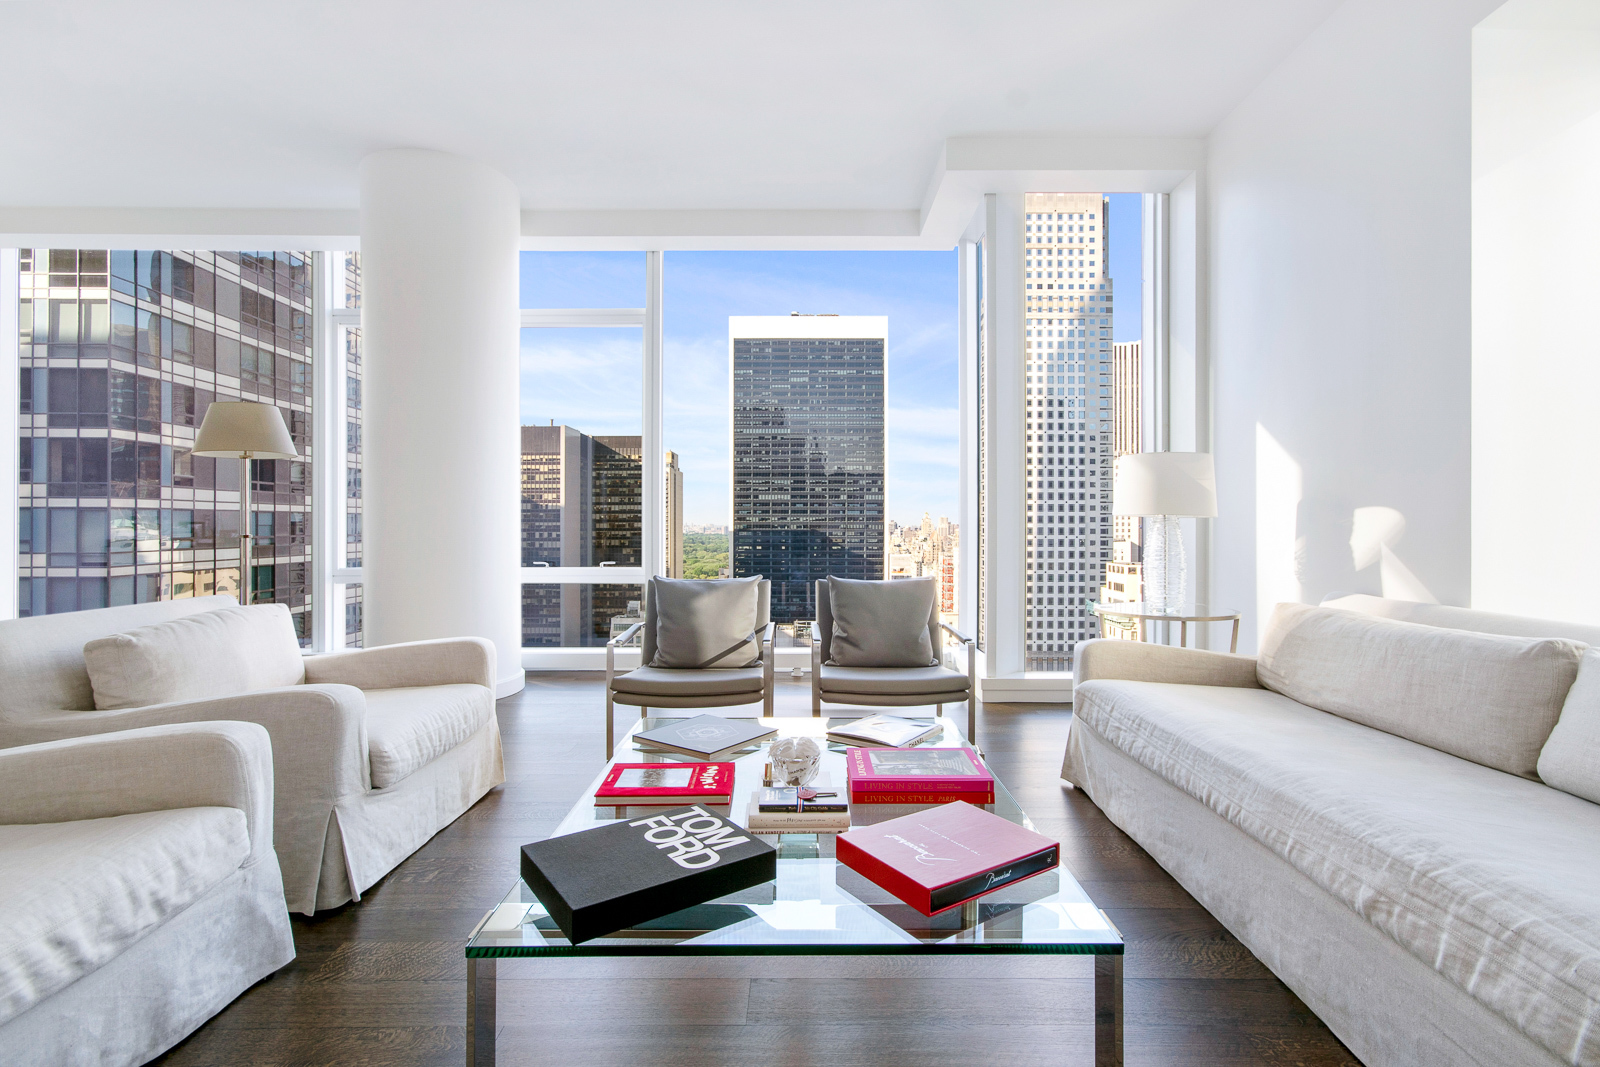 Perfect for investors. Leased from July 2021  This is the most desirable 3 bedroom/ 3.5 bath at the the renowned Baccarat Hotel and Residences giving you access to the most luxurious Manhattan life-style. With a generous 2,303 approx.sq.ft. and both North and East exposures, you are captivated by fantastic Central Park Views. The interior was designed by Tony Ingrao which offers the ultimate high-end in luxury living including wide ebony stained white oak floors, SieMatic kitchen with ebonized walnut and nickel frame cabinetry, Miele and Sub- Zero appliances and washer/dryer. With a separate kitchen, this layout allows for the maximum space needed for entertaining in the living/dining room. Master bathroom is impeccably detailed with honed Lido white marble slab floors and walls, radiant heated floors, and free standing soaking tub. The second bathrooms are fully clad in Siberian polished marble. Custom Fantini polished chrome fixtures are featured throughout the residence. FURNISHED. No detail was left behind when designing and finishing this immaculate building. The Baccarat Hotel and Residence is known for its unparalleled level of service and luxury living. Residents have unlimited access to the amenities of the flagship Baccarat Hotel, including; Le Chevalier, salon and lounge, Spa de la Mer, Baccarat Bar, full fitness center and marble clad swimming pool with cabanas.  On-site 24/7 are multilingual concierge services, valet and doormen. Located on 5th Avenue and 53rd Street this building is one of the most desirable Midtown locations, sitting across the street from the MoMa and a few blocks from Central Park.